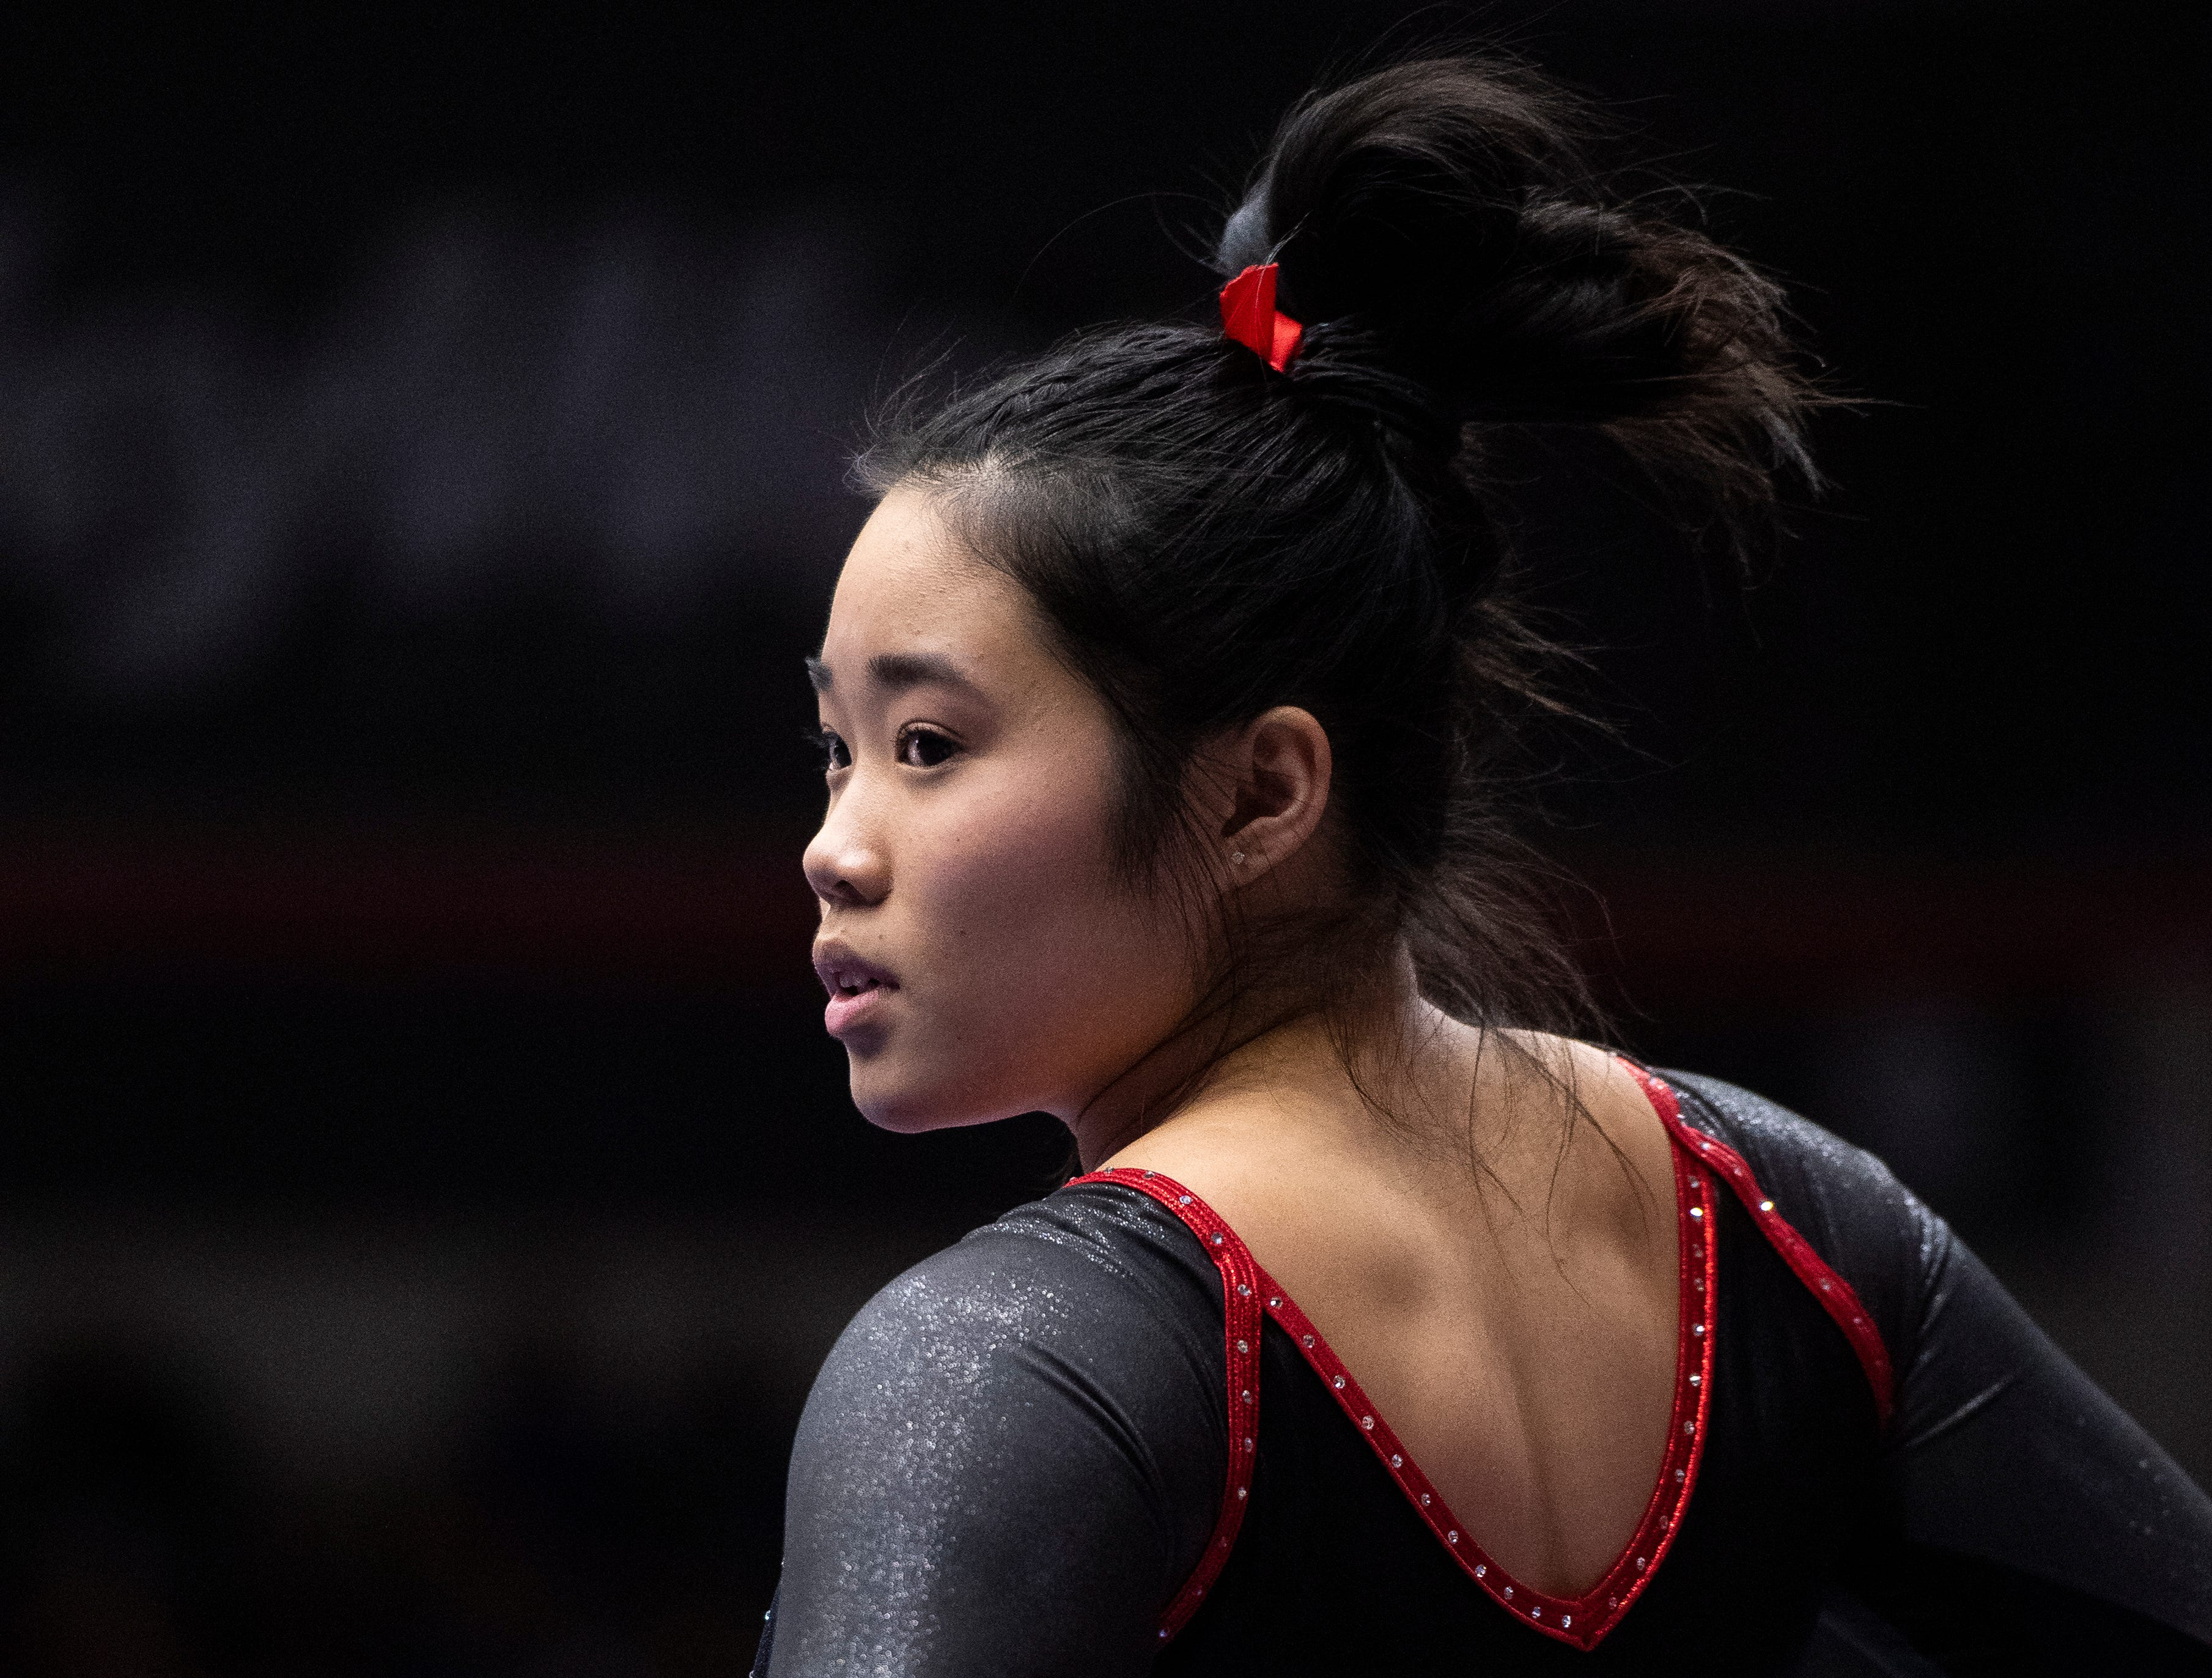 Southern Utah University freshman Caitlin Kho prepares for her floor routine against Boise State at the America First Event Center Friday, January 18, 2019.